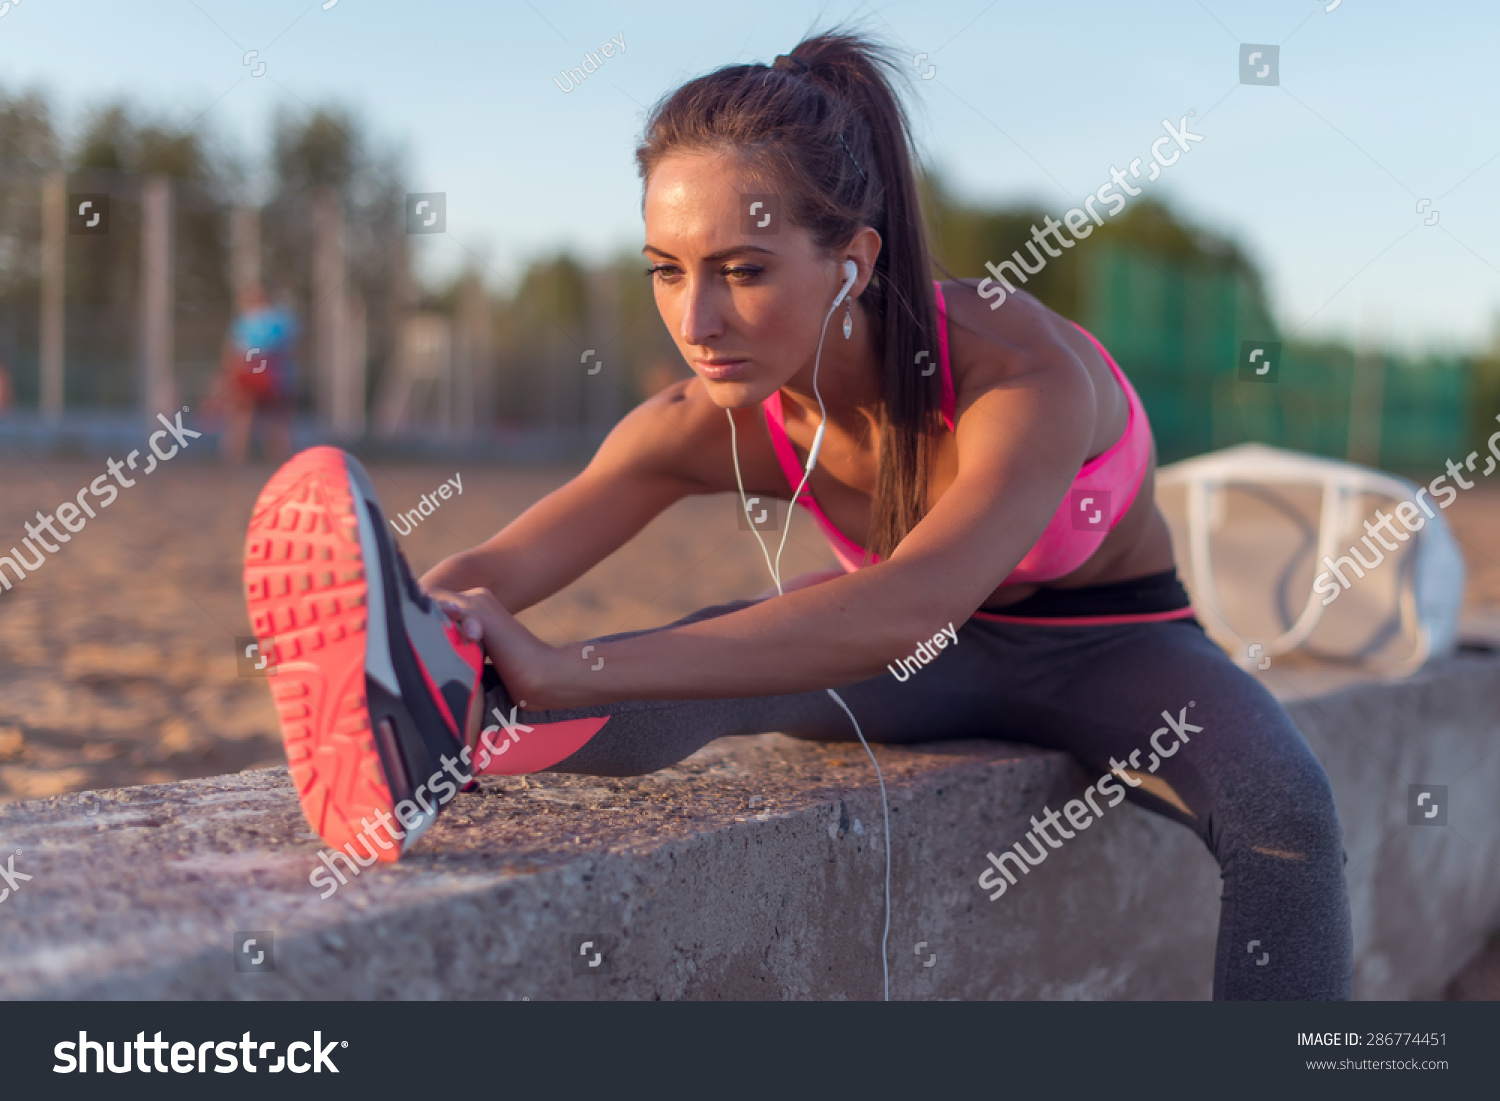 preteen stretch Fitness model athlete girl warm up stretching her hamstrings, leg and back. Young woman